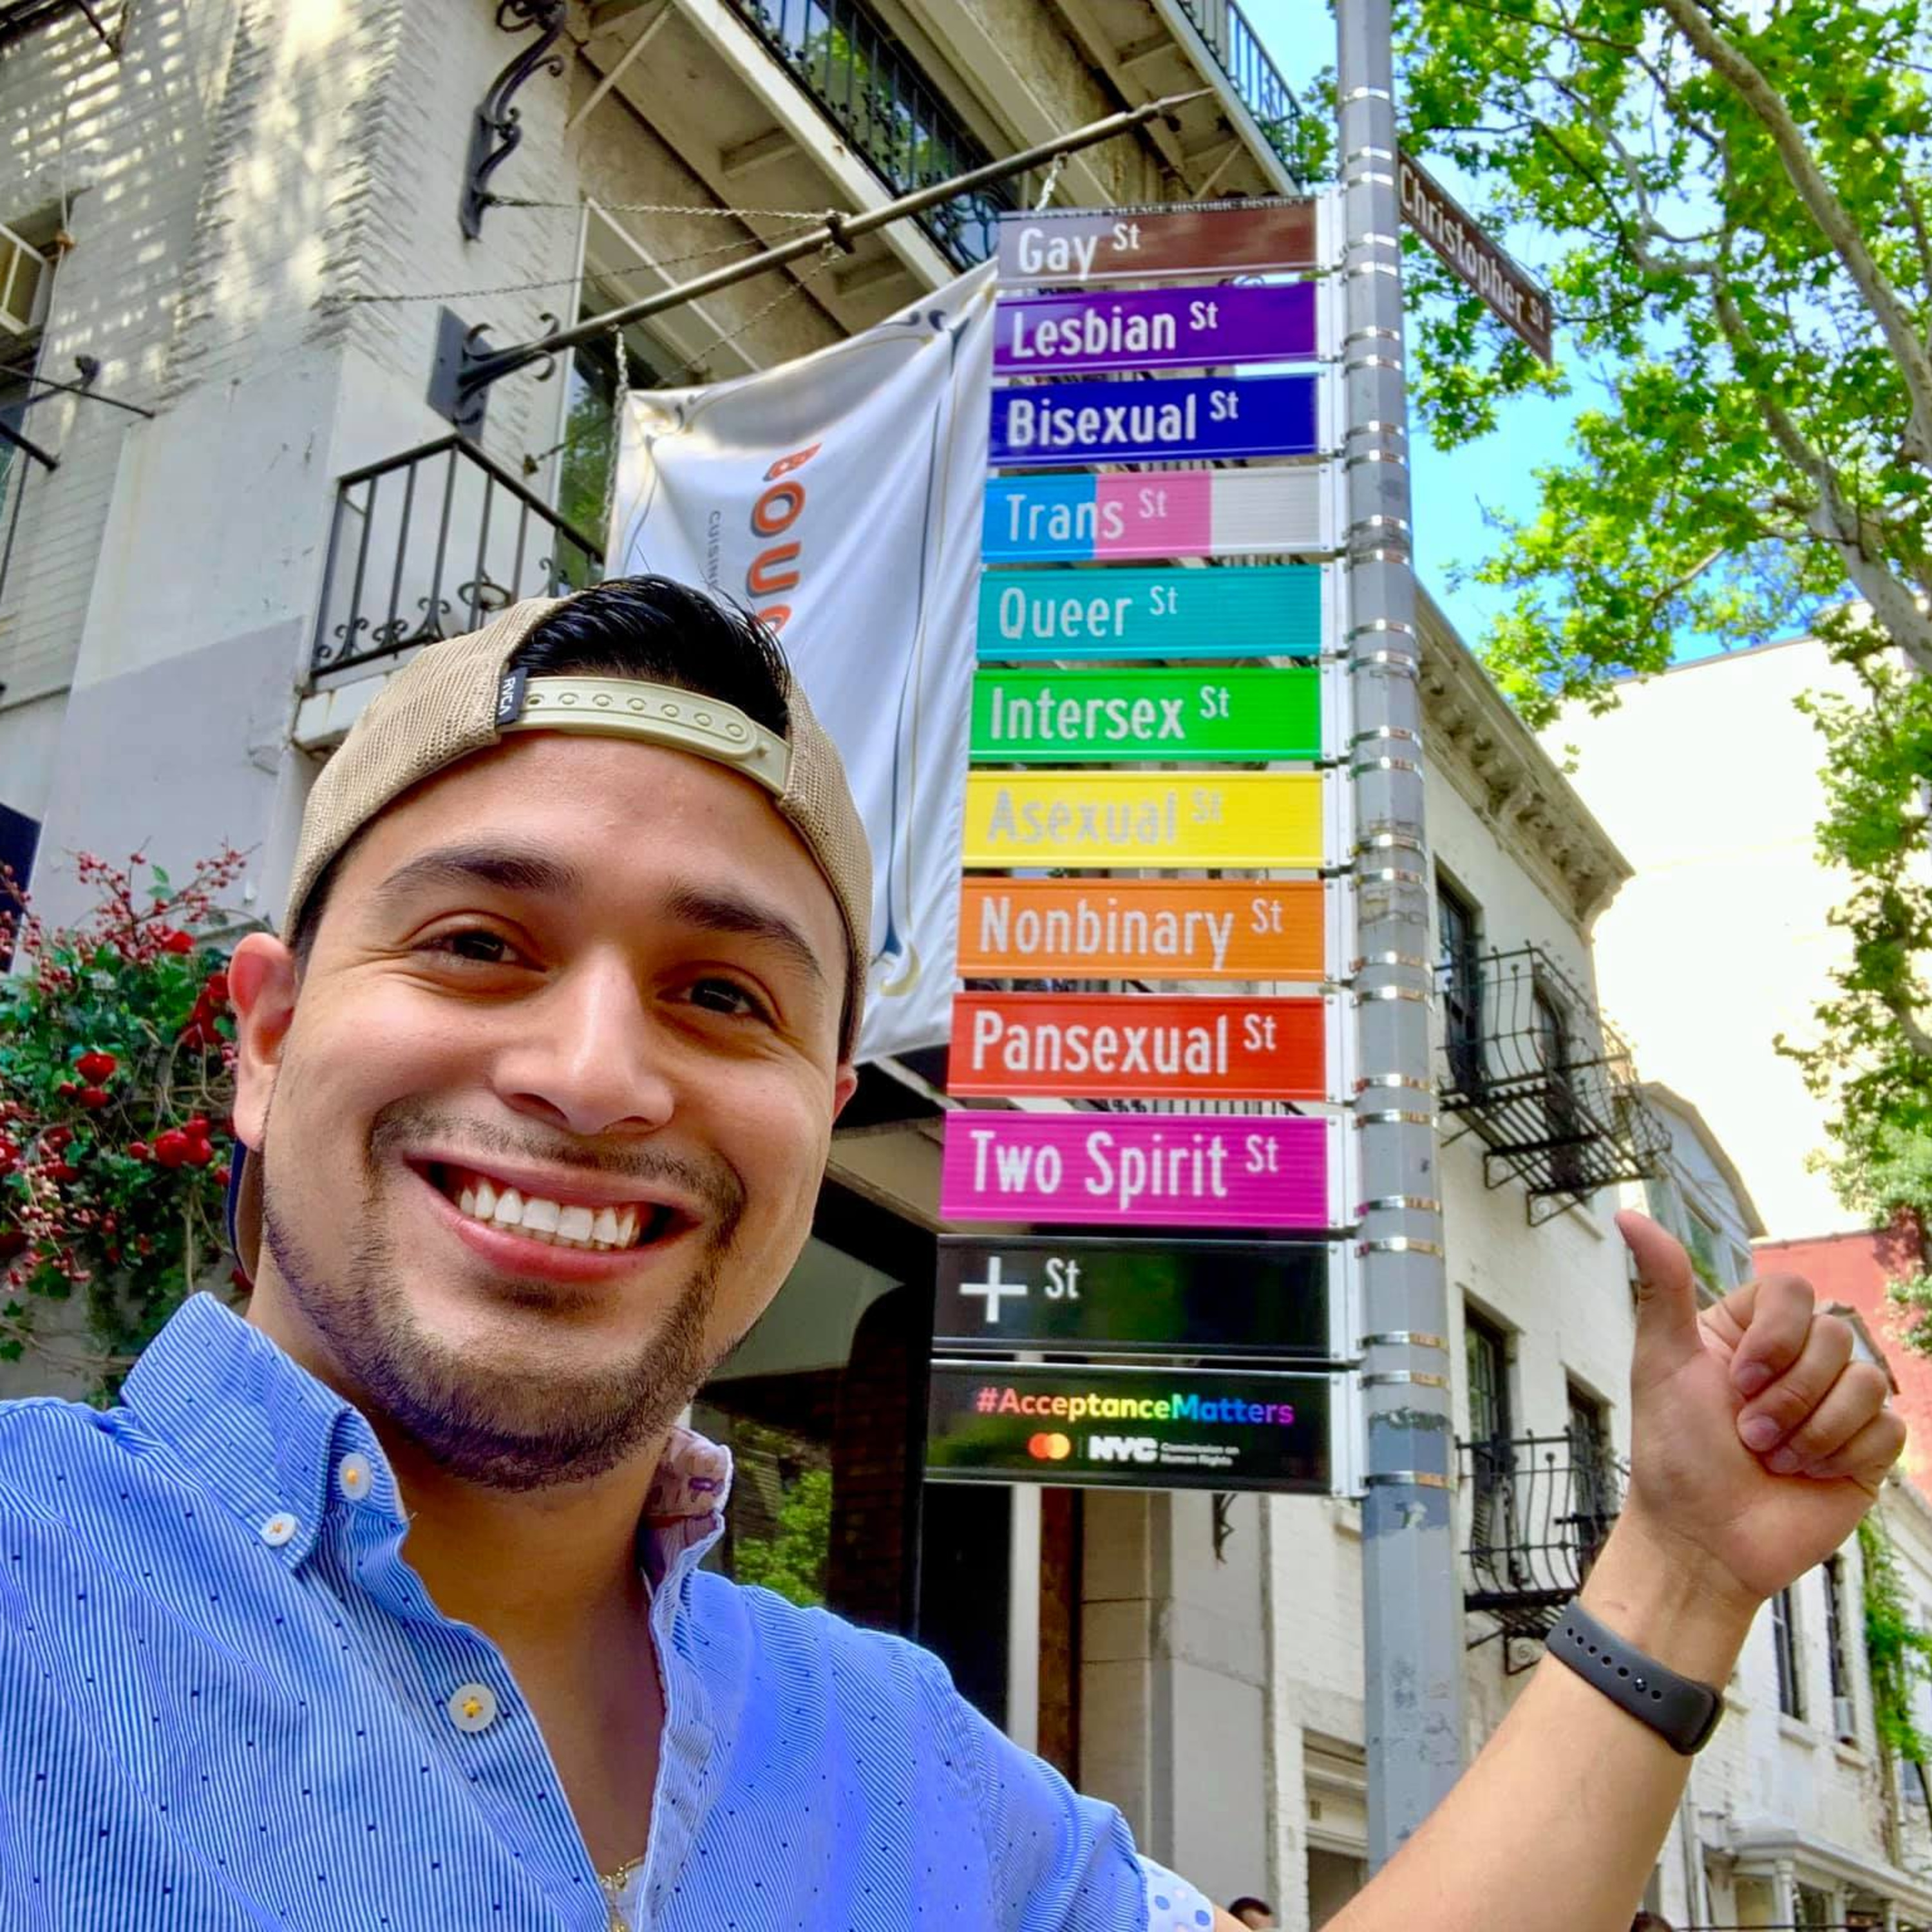 Mental Health Download: Exploring Mental Illness, Suicide, Homelessness and Incarceration - Overcoming and Becoming: LGBTQ+ Latinx Resiliency featuring Jose Vega and Bank of America Student Leaders Kelly Rojo Reyes and Abigail Lara